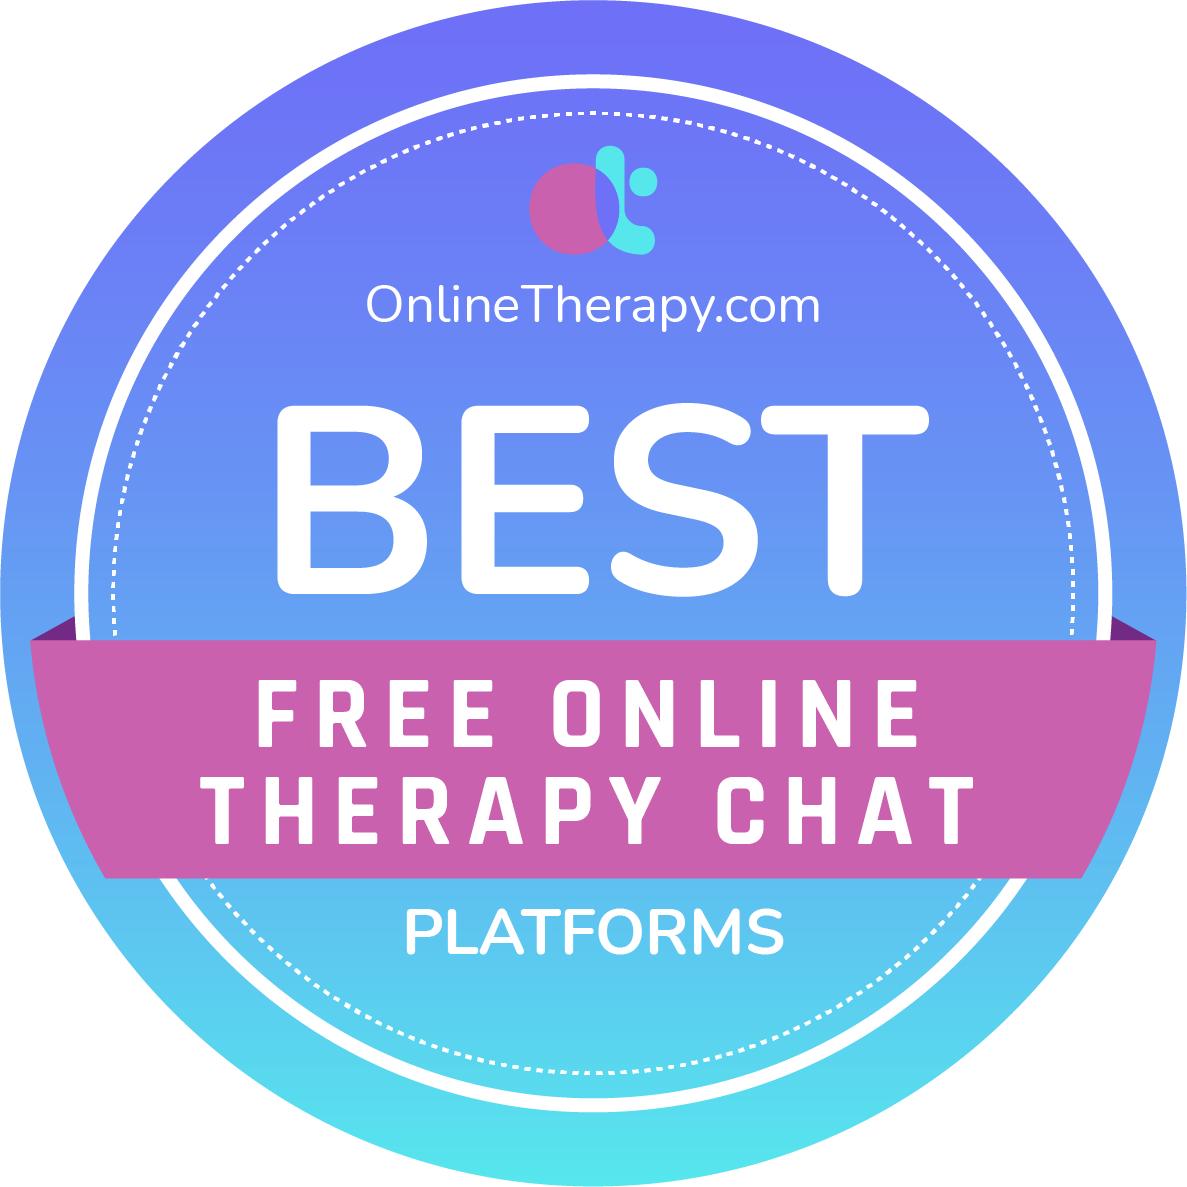 Psychic chat a for free online with Free Psychic